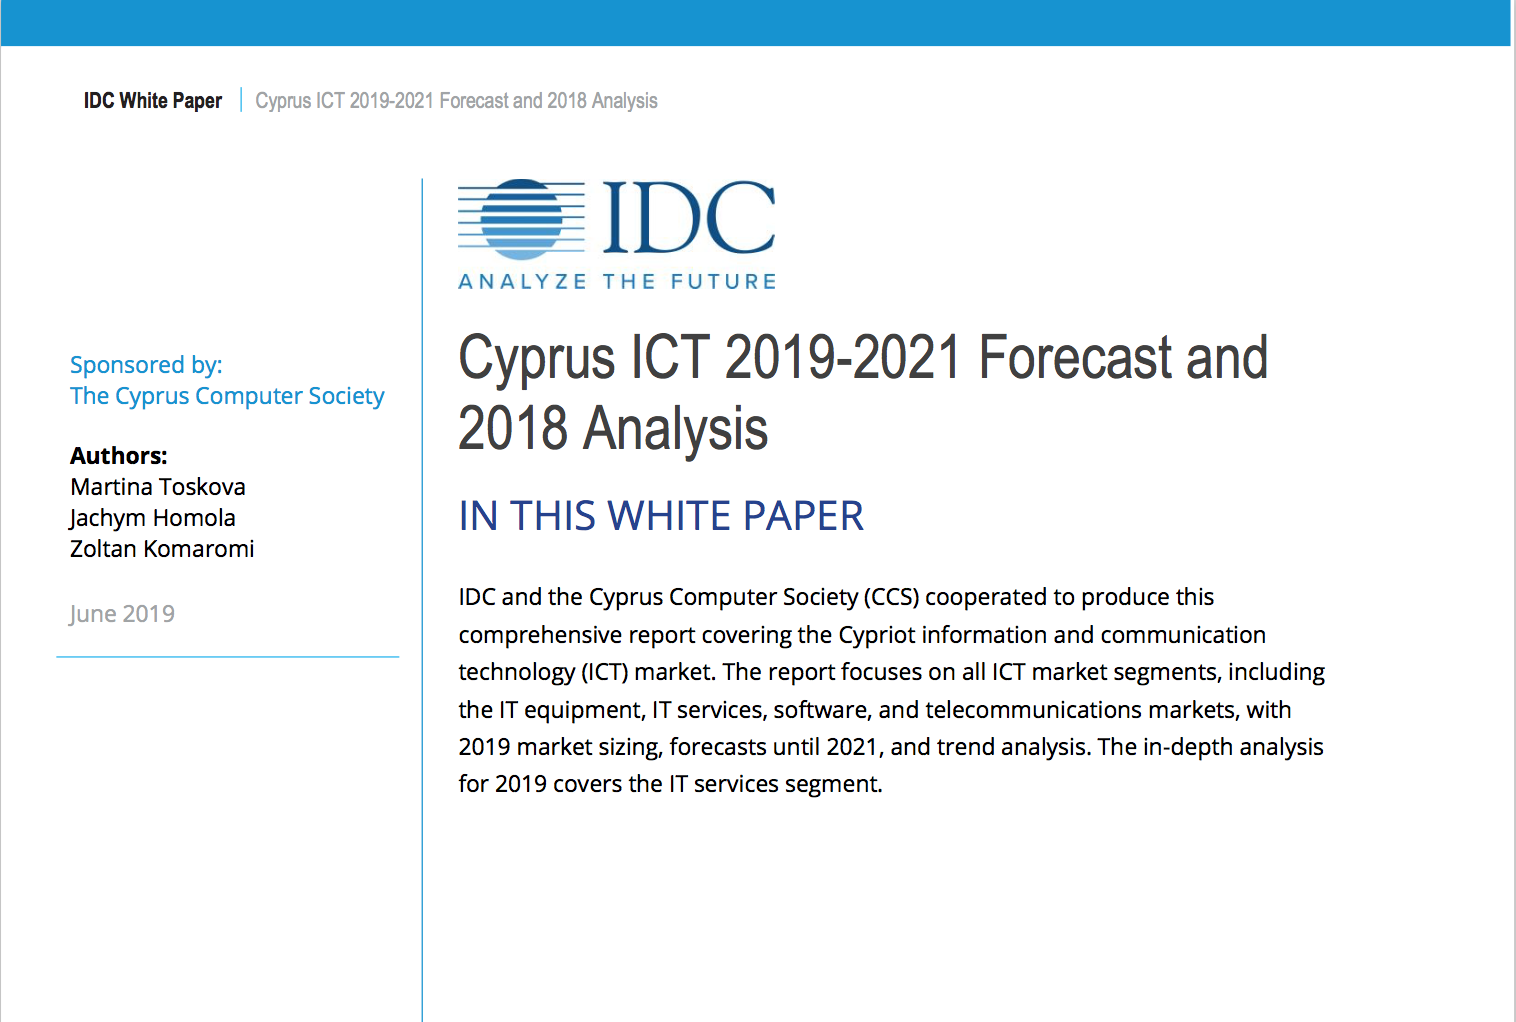 Cyprus ICT 2019-2021 Forecast and 2018 Analysis